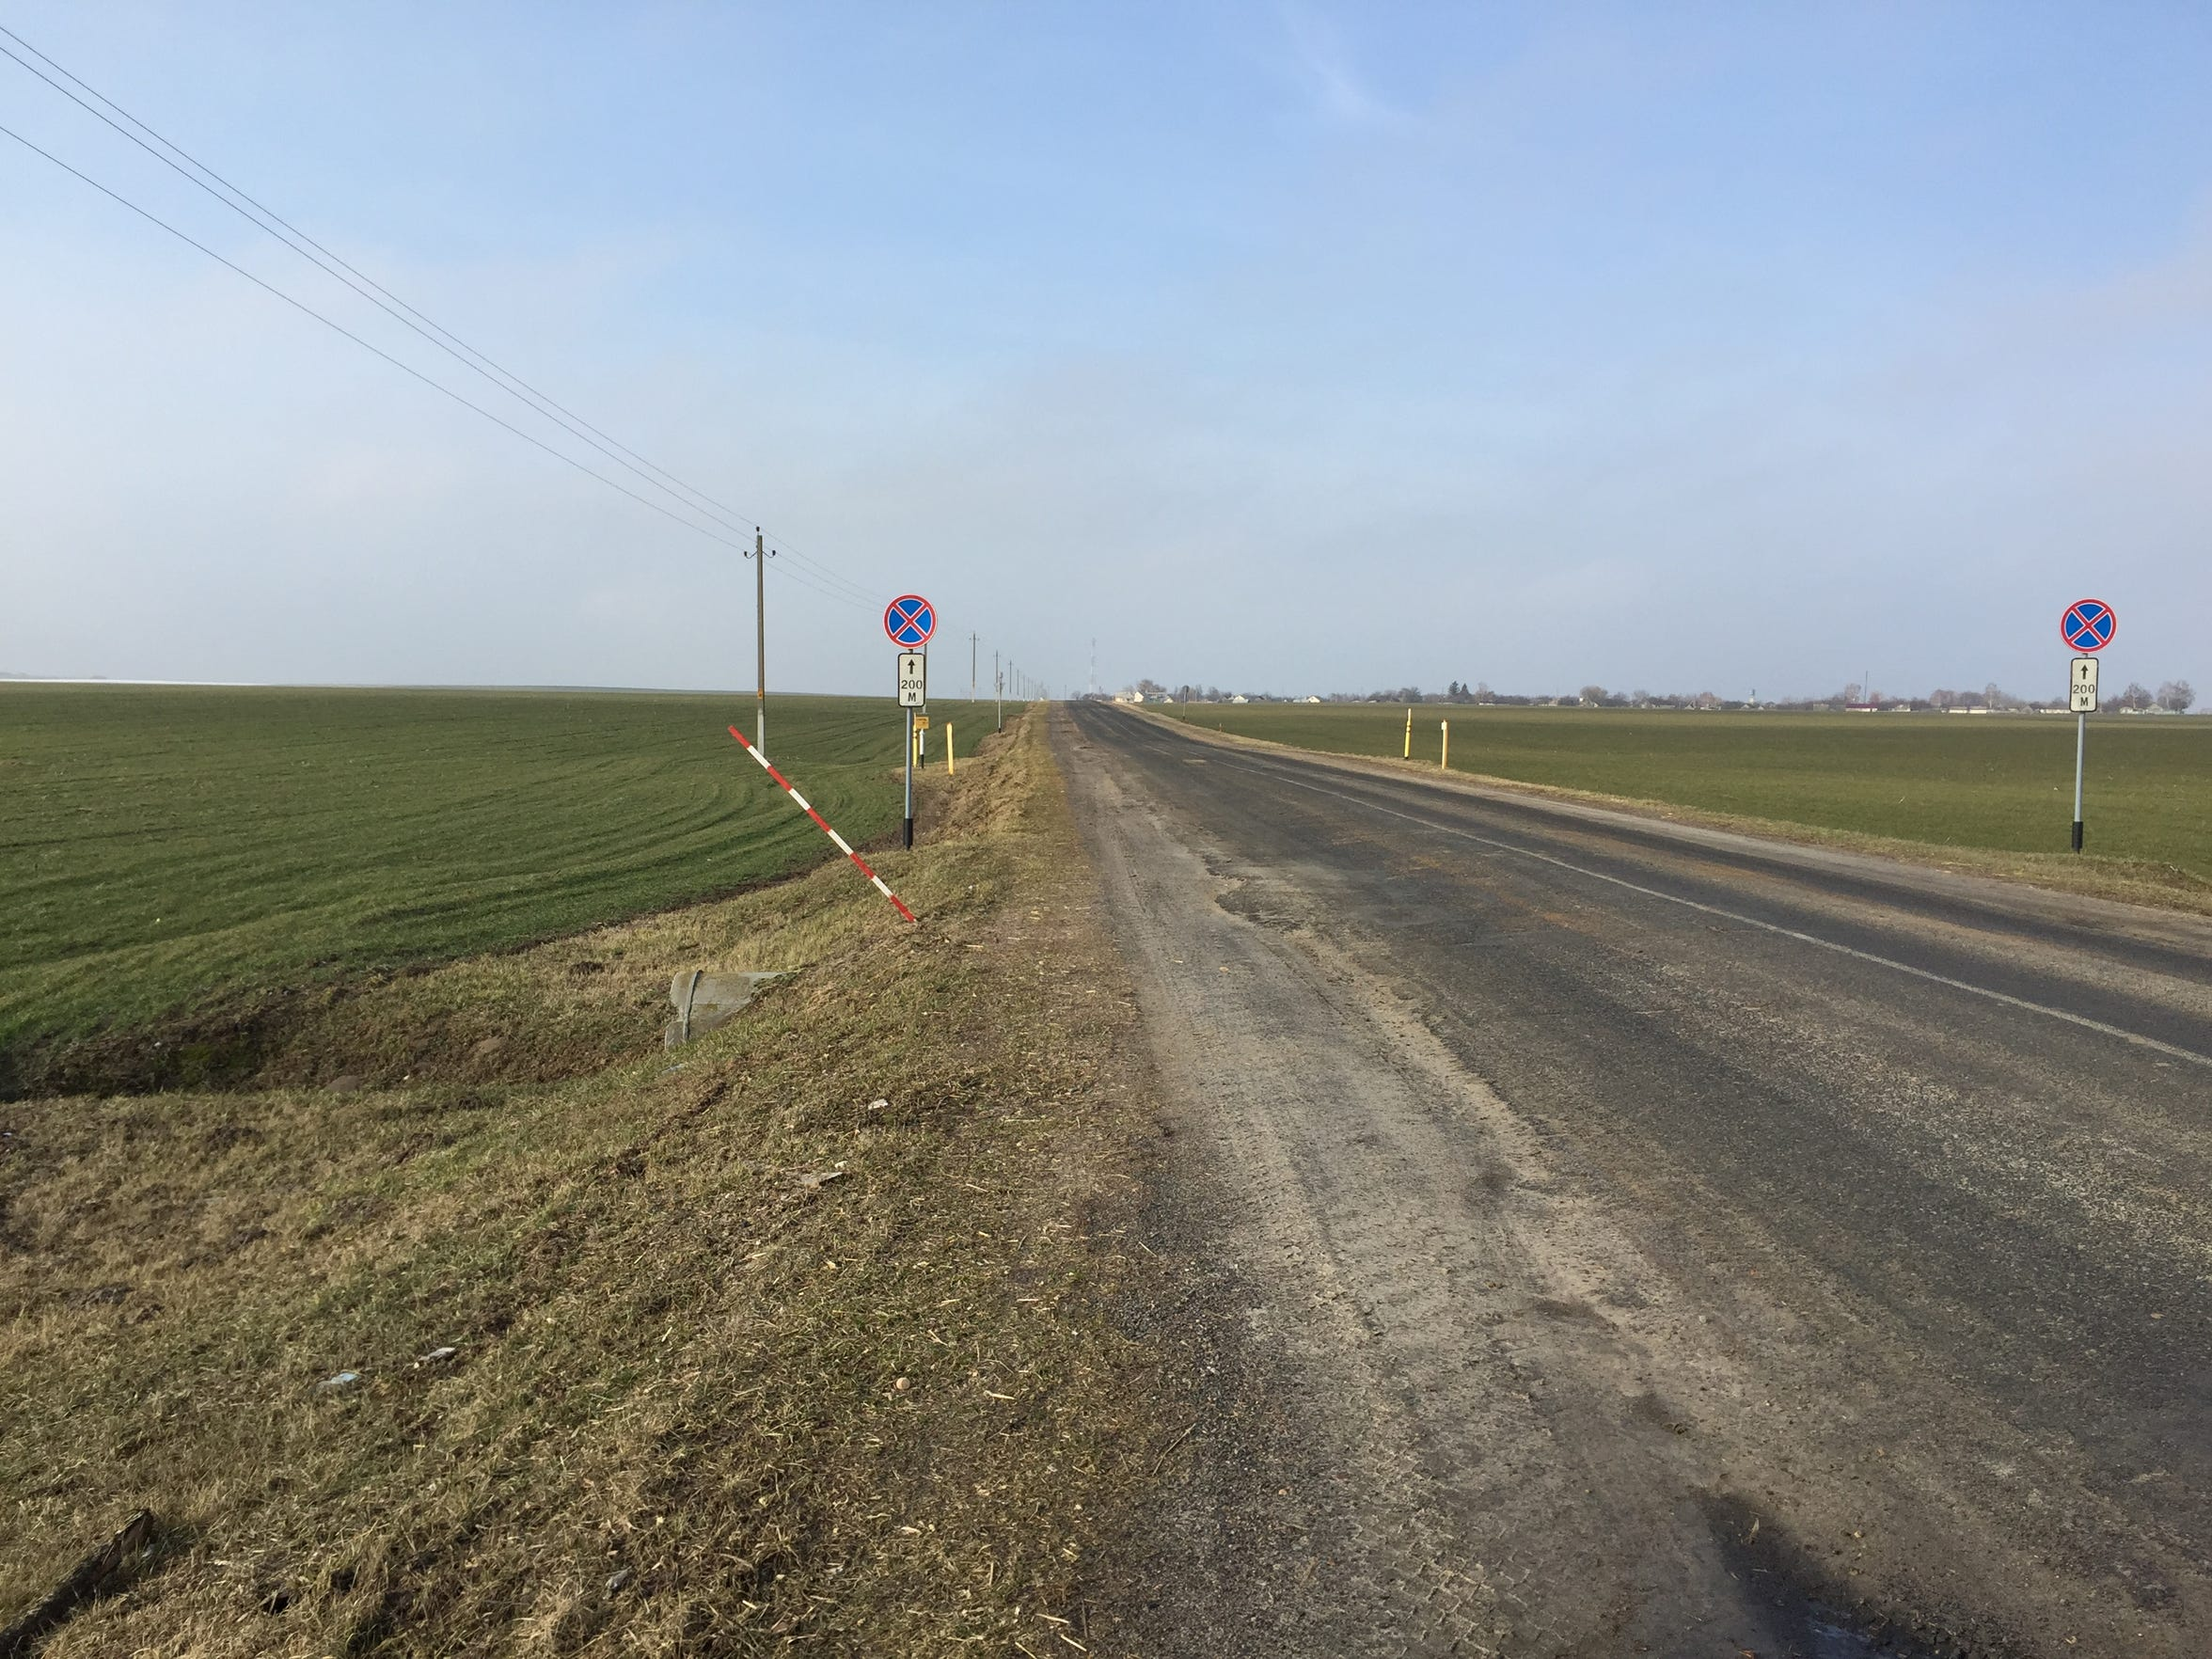 Rural Belarus, near the border with Ukraine.